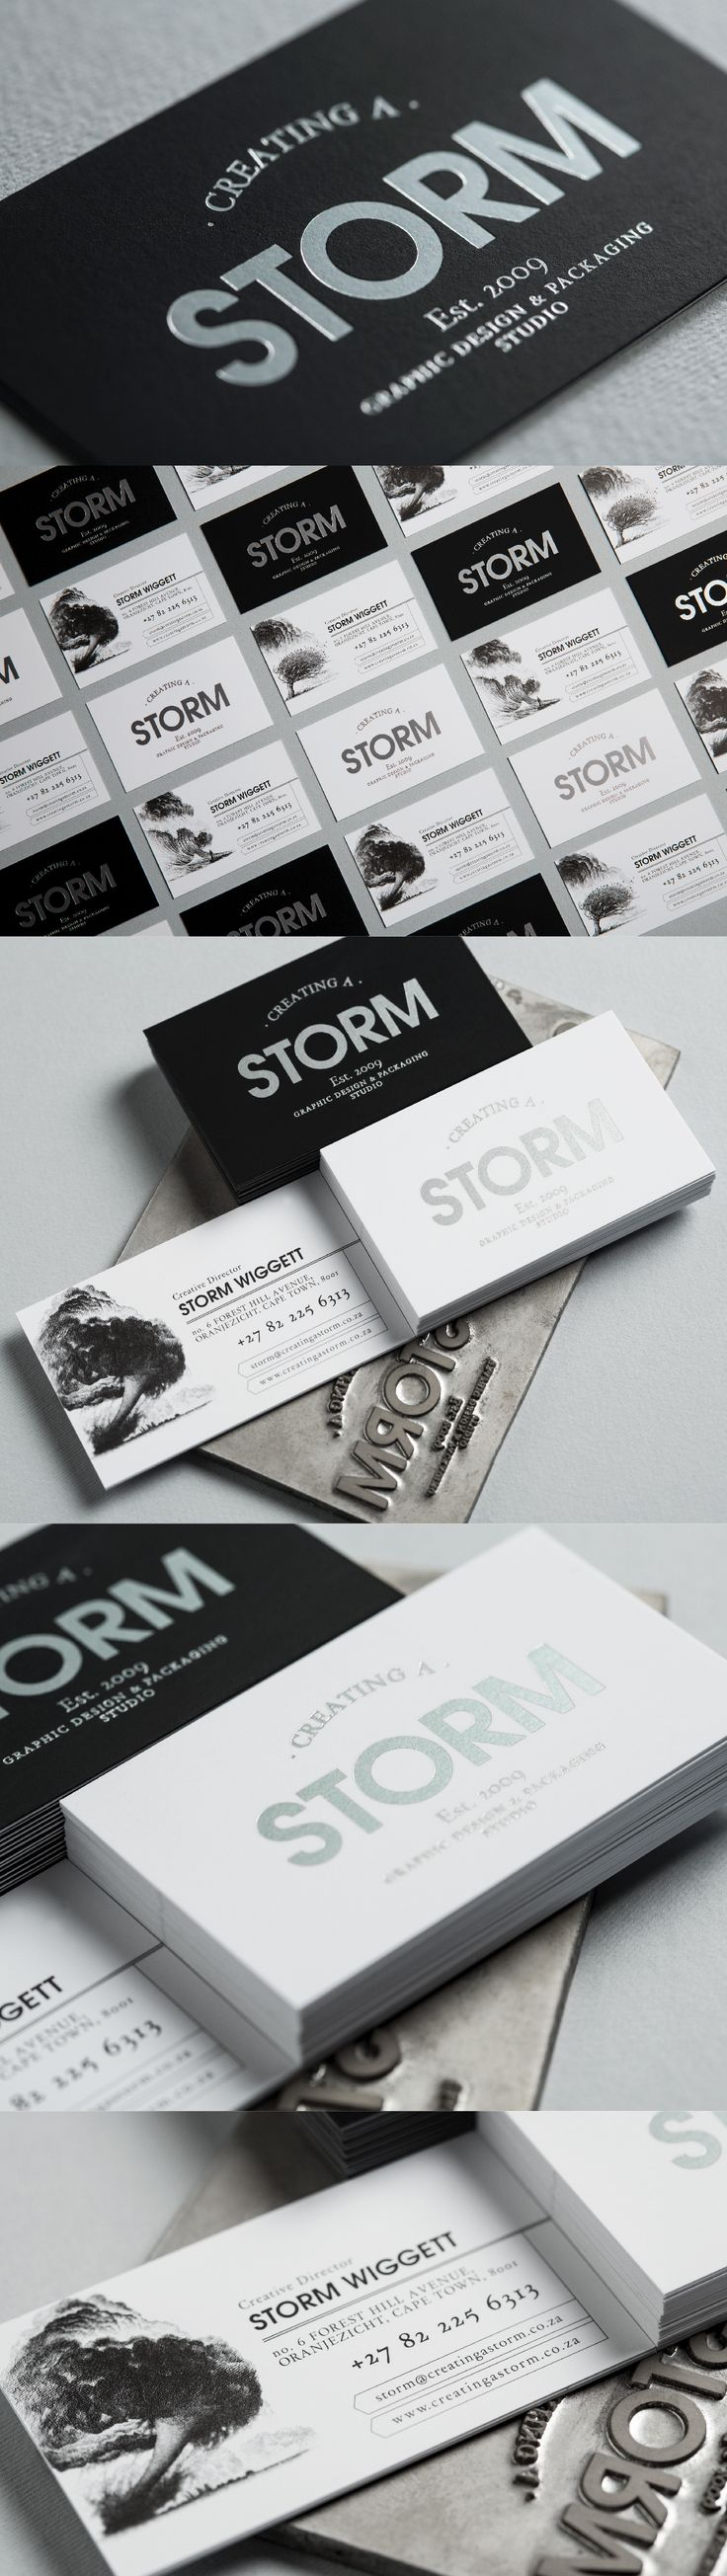 Creating a Storm Business Cards with Silver Foiling and beautifully etched storm imagery.